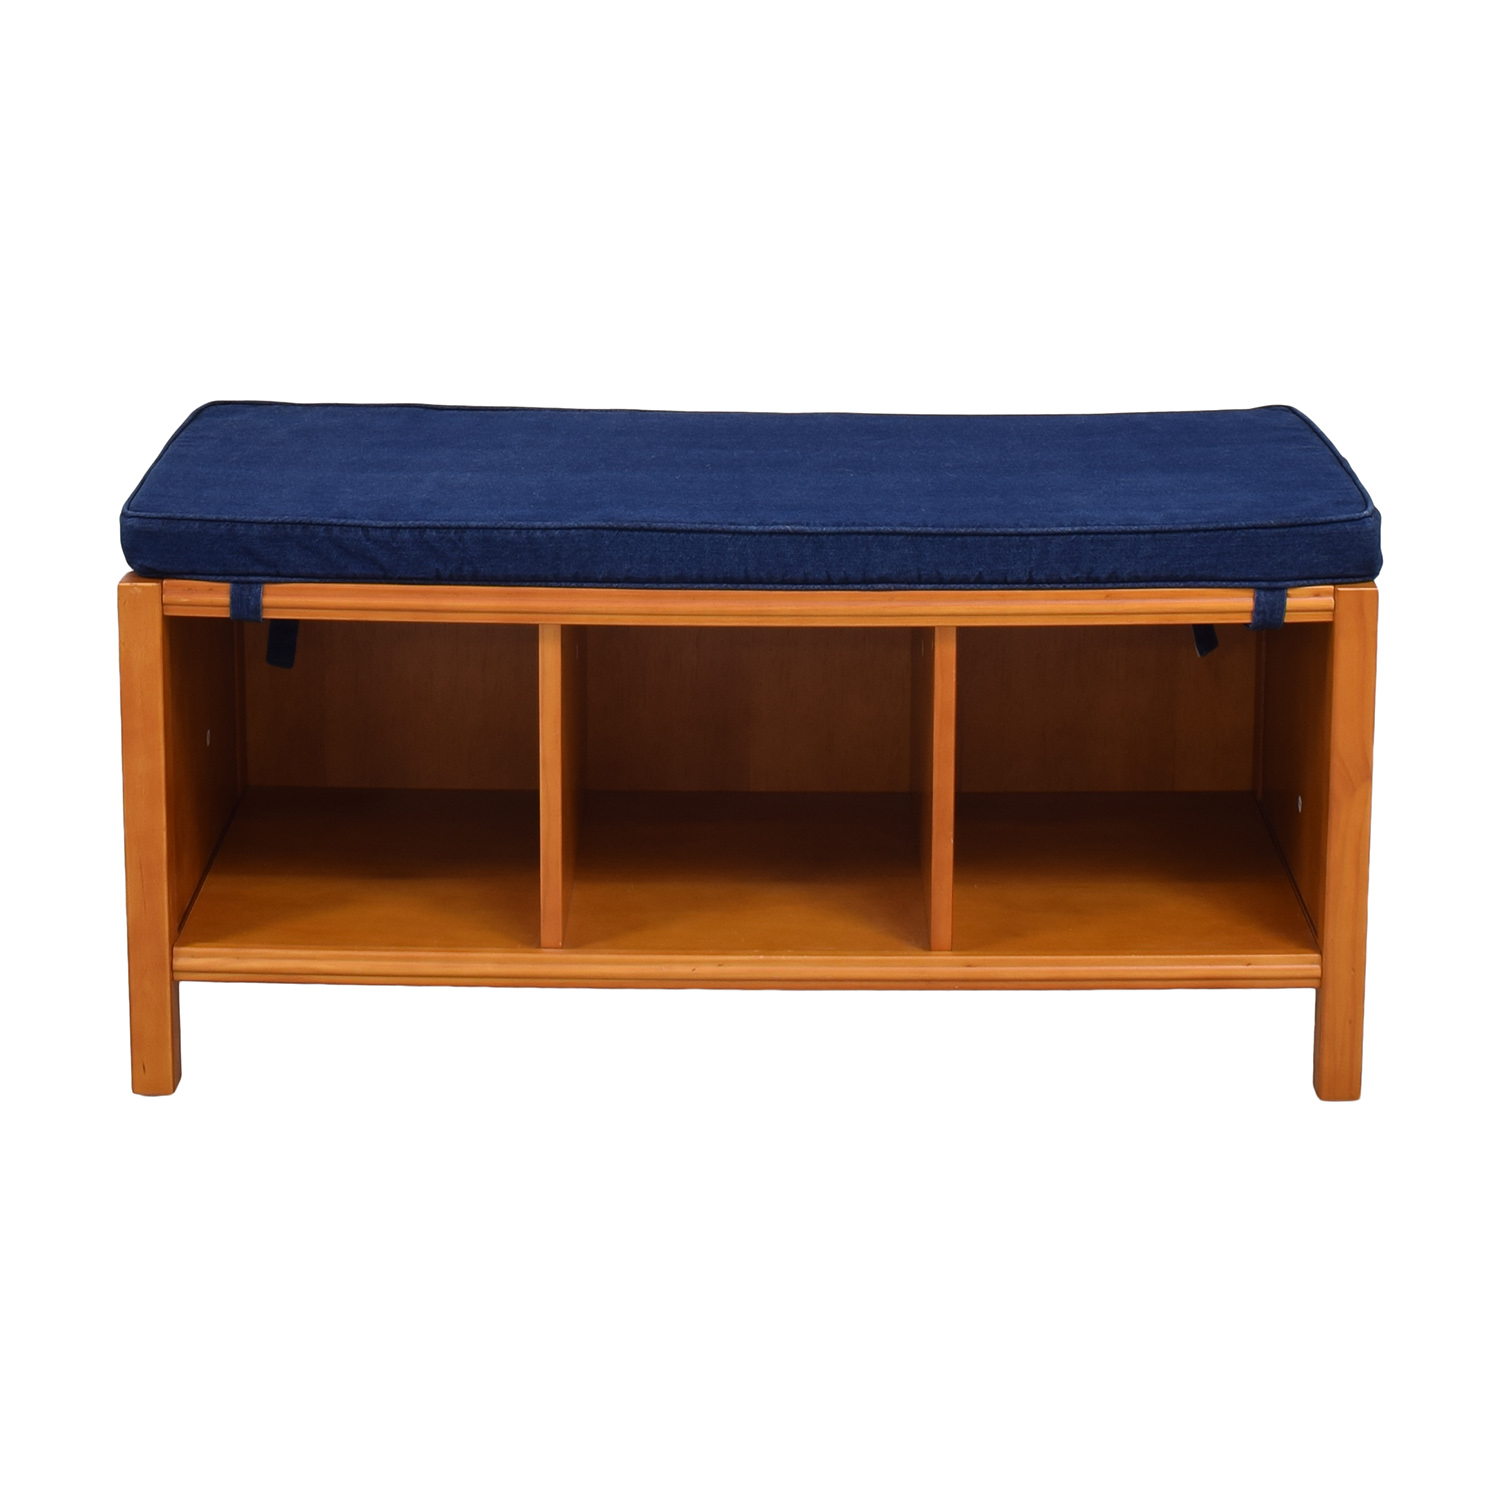 Land of Nod The Land of Nod Three Cube Bench with Cushion brown & blue